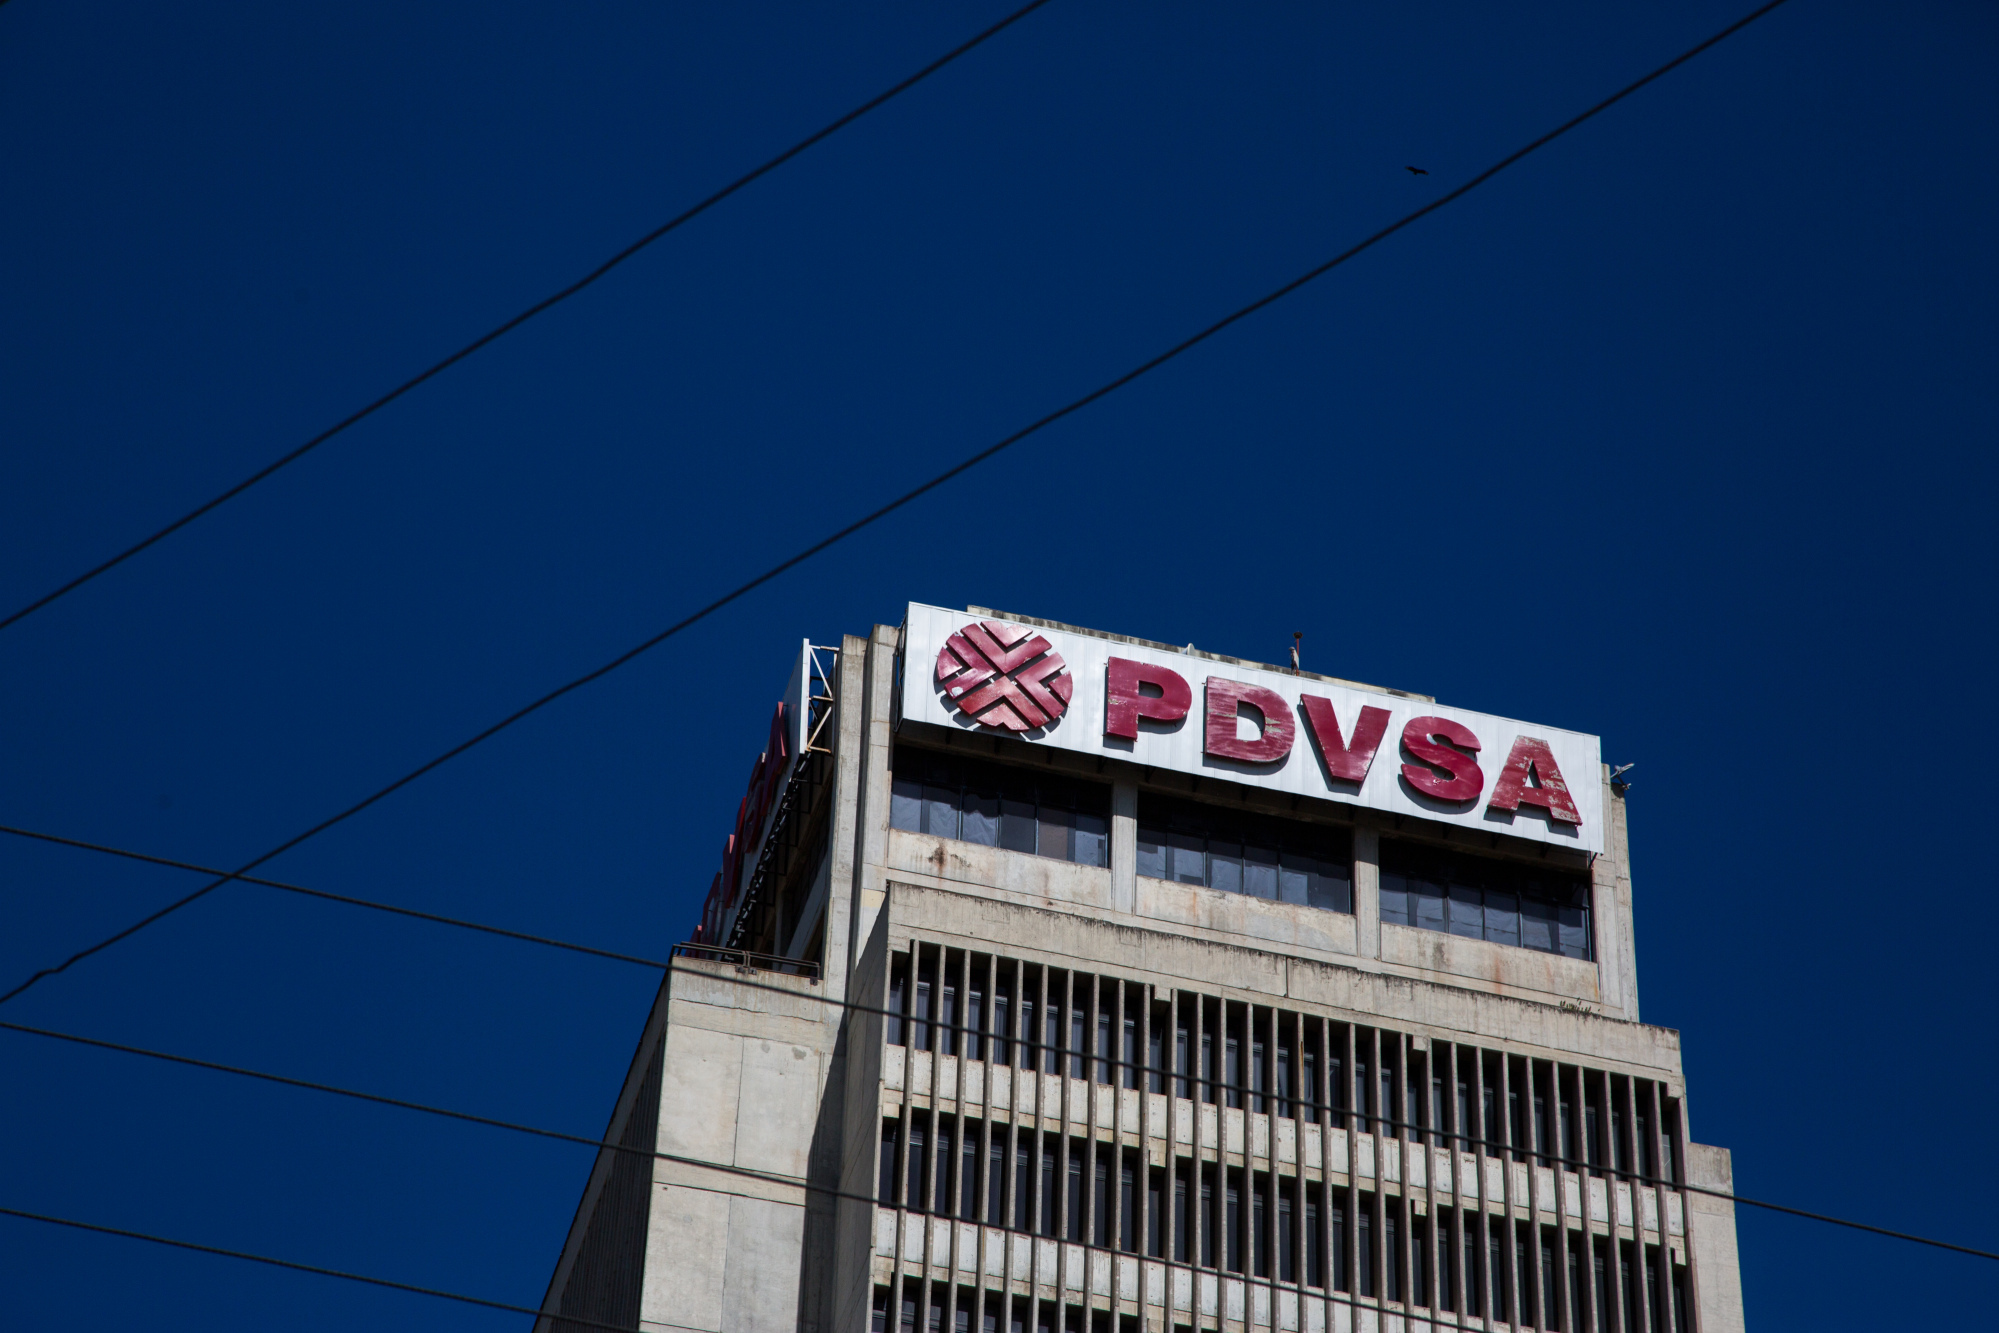 Petroleos de Venezuela SA (PDVSA) signage is displayed on a building in Puerto La Cruz, Anzoategui State, Venezuela, on Wednesday, Feb. 7, 2018. Hunger is hastening the ruin of Venezuelan's oil industry as workers grow too weak and hungry for heavy labor. Absenteeism and mass resignations mean few are left to produce the oil that keeps the tattered economy functioning. Photographer: Wil Riera/Bloomberg